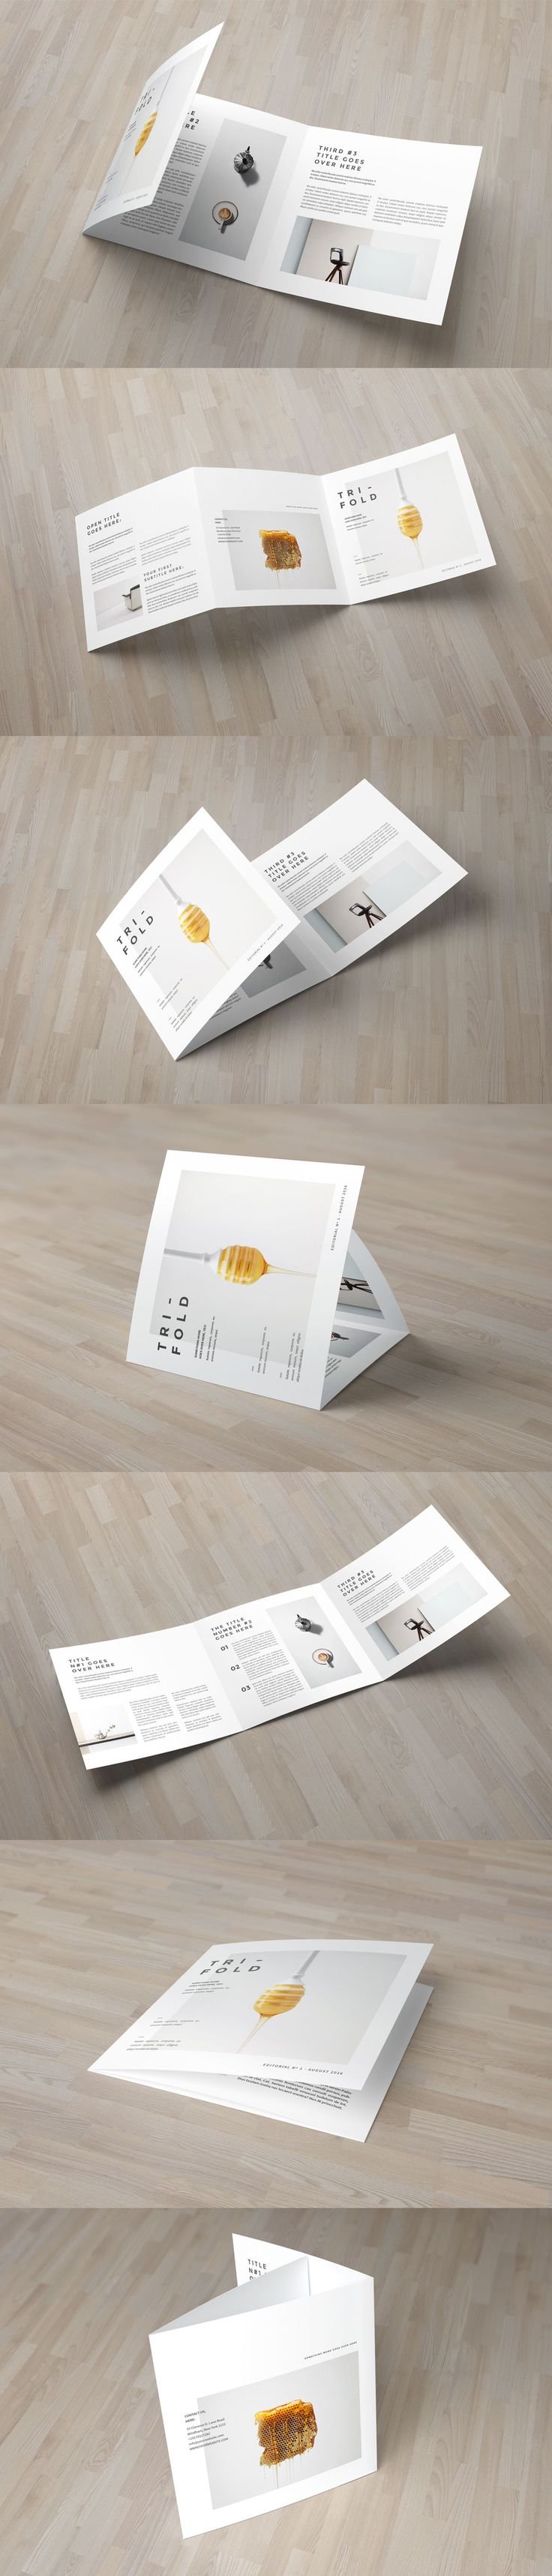 Square Minimal Cool White Trifold Brochure Template INDD